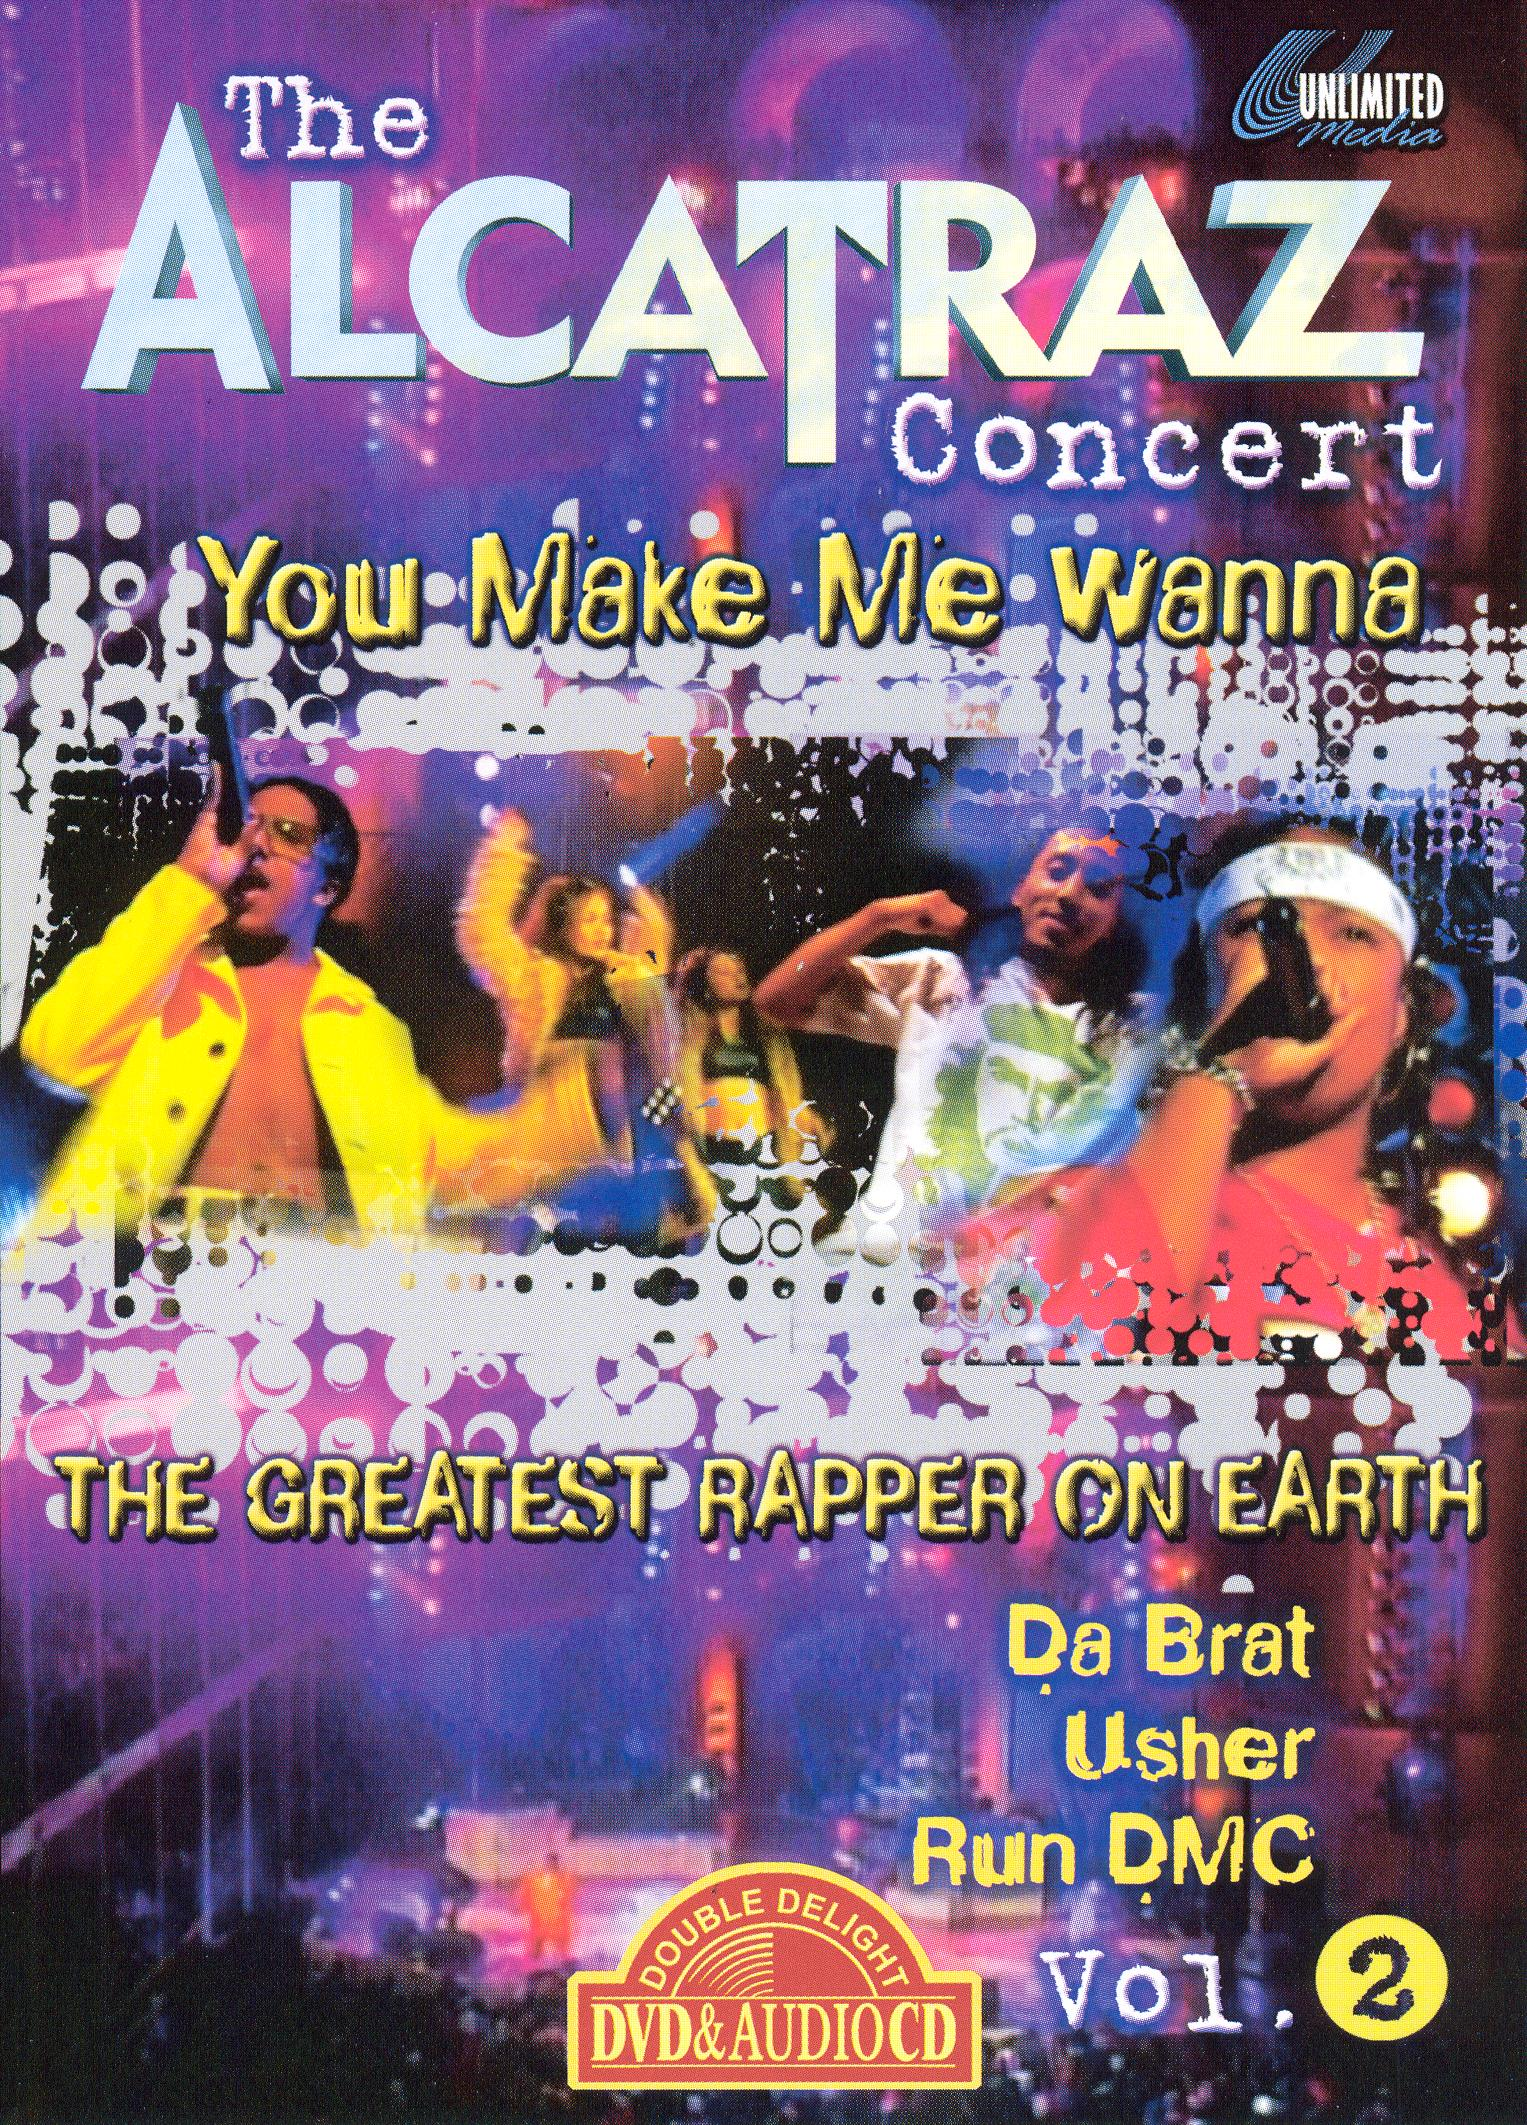 The Alcatraz Concert, Vol. 2: You Make Me Wanna